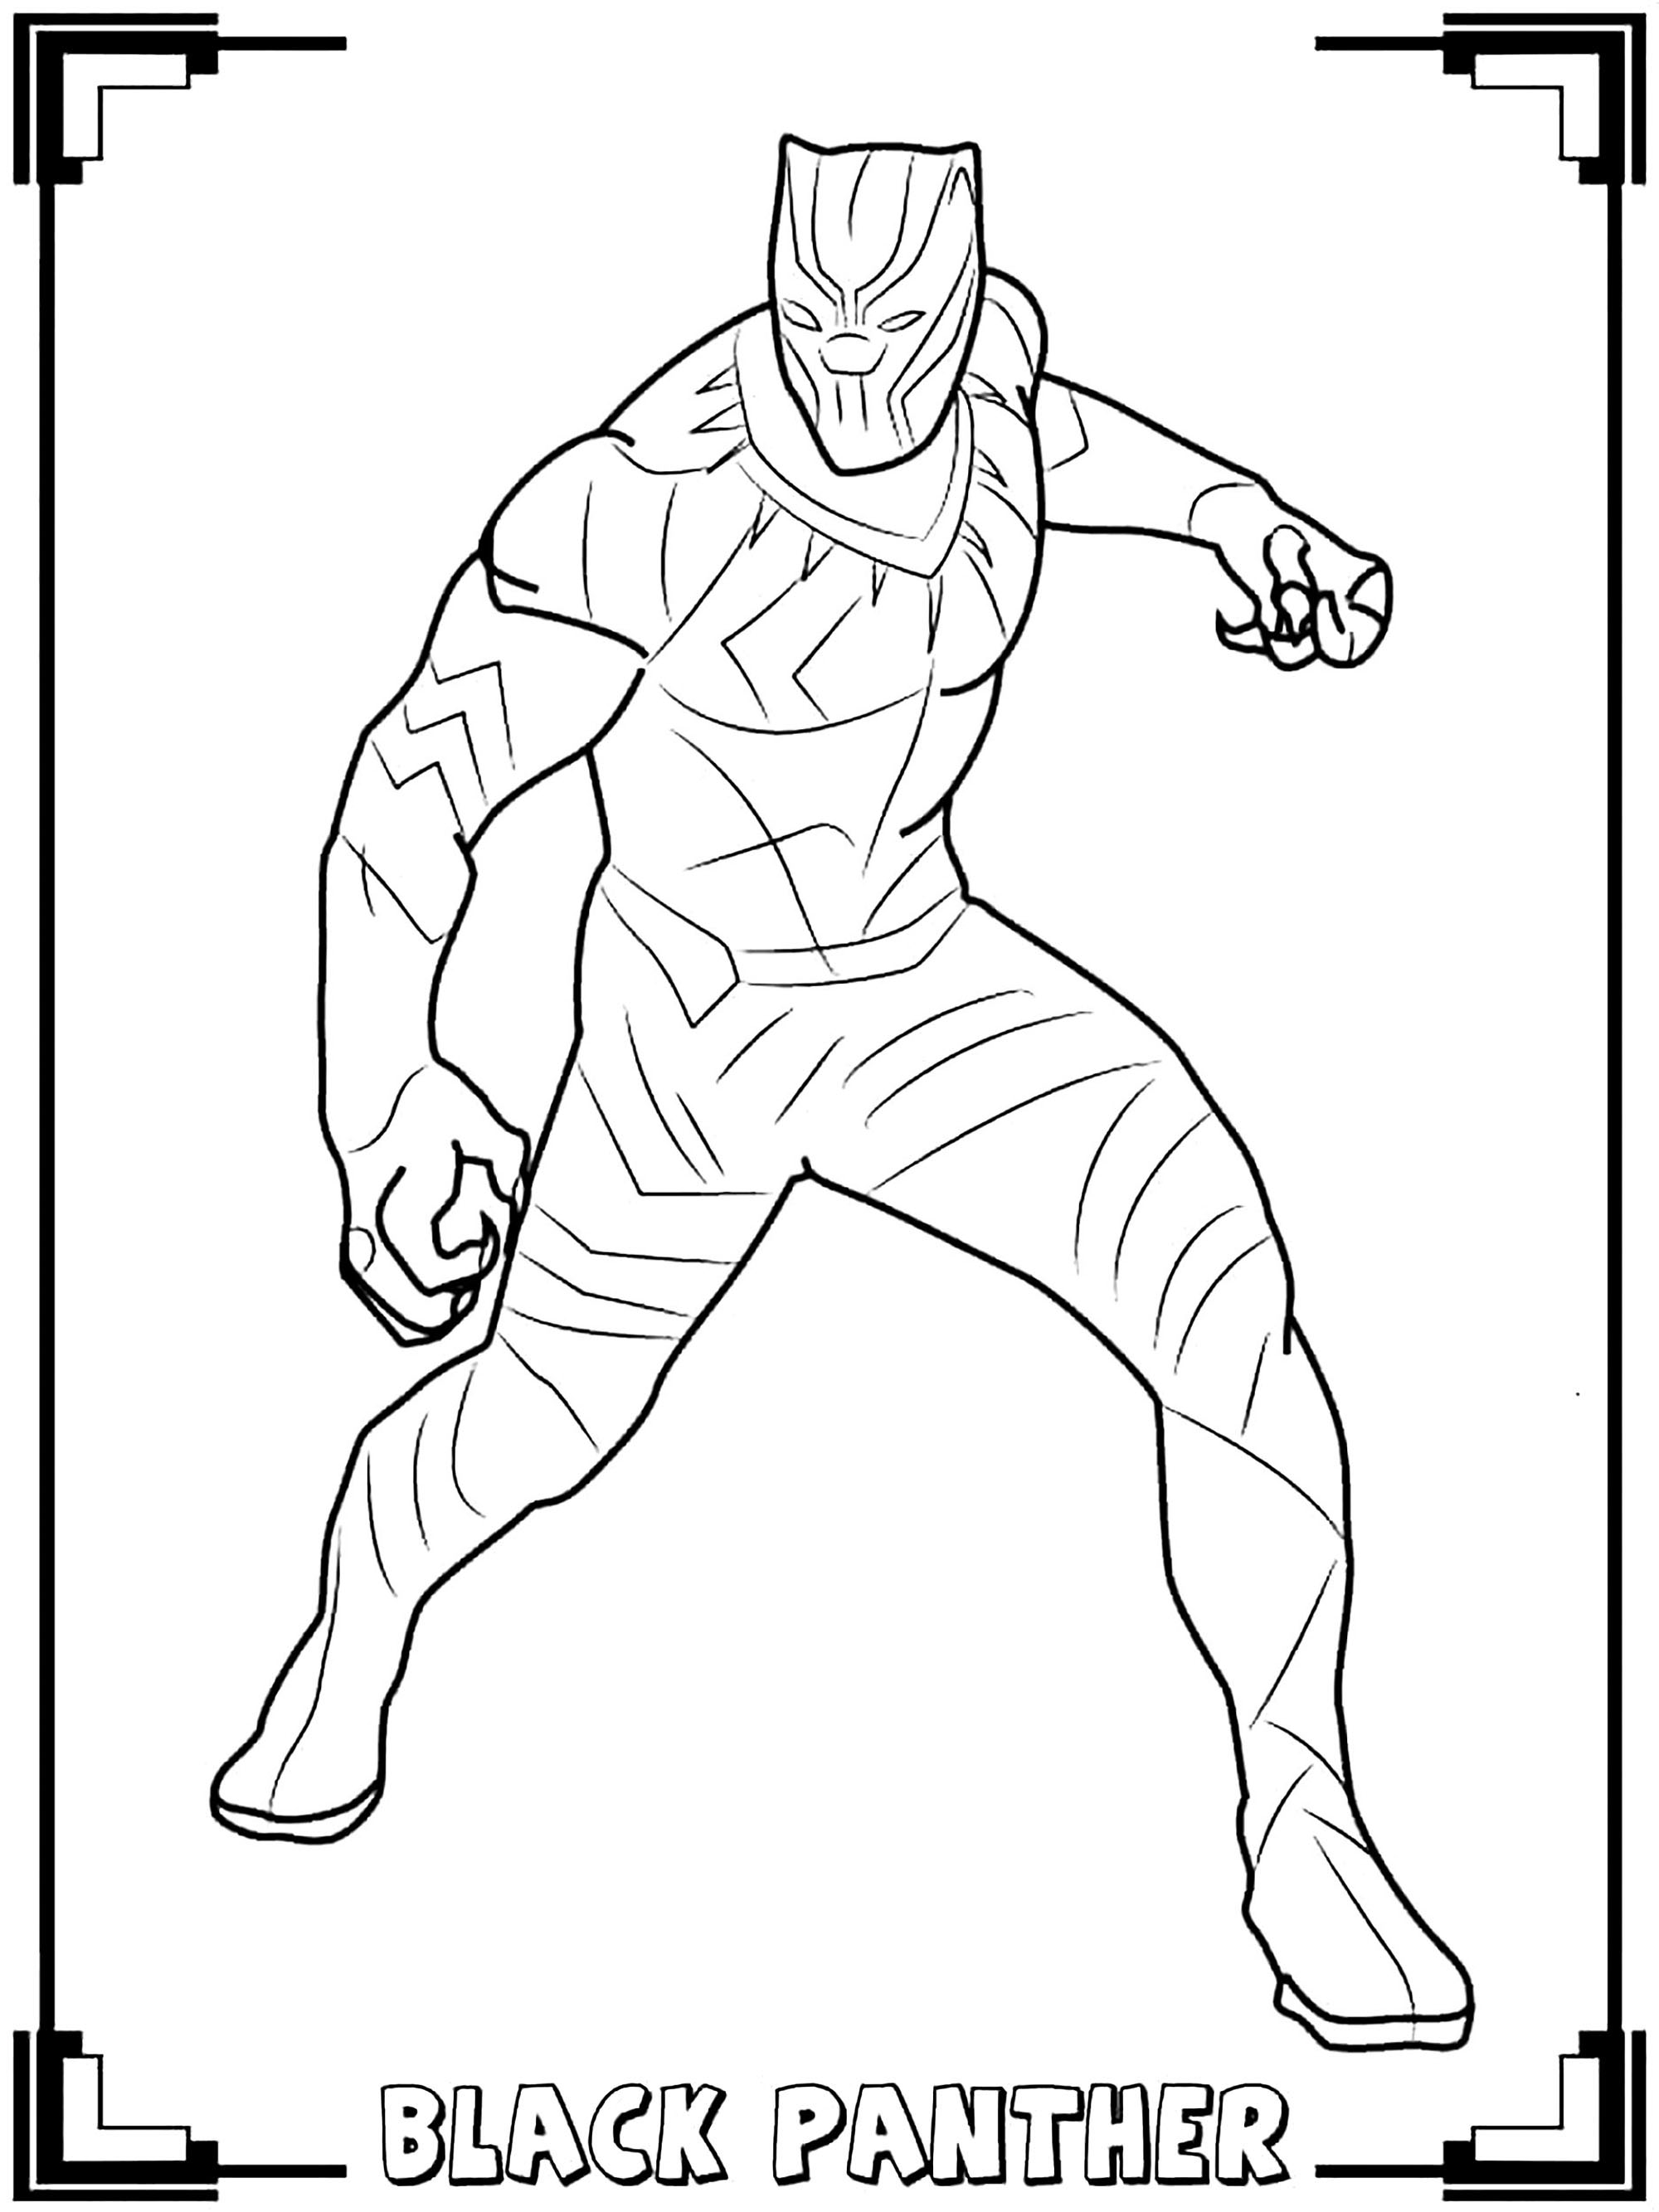 Beautiful Black Panther coloring page to print and color